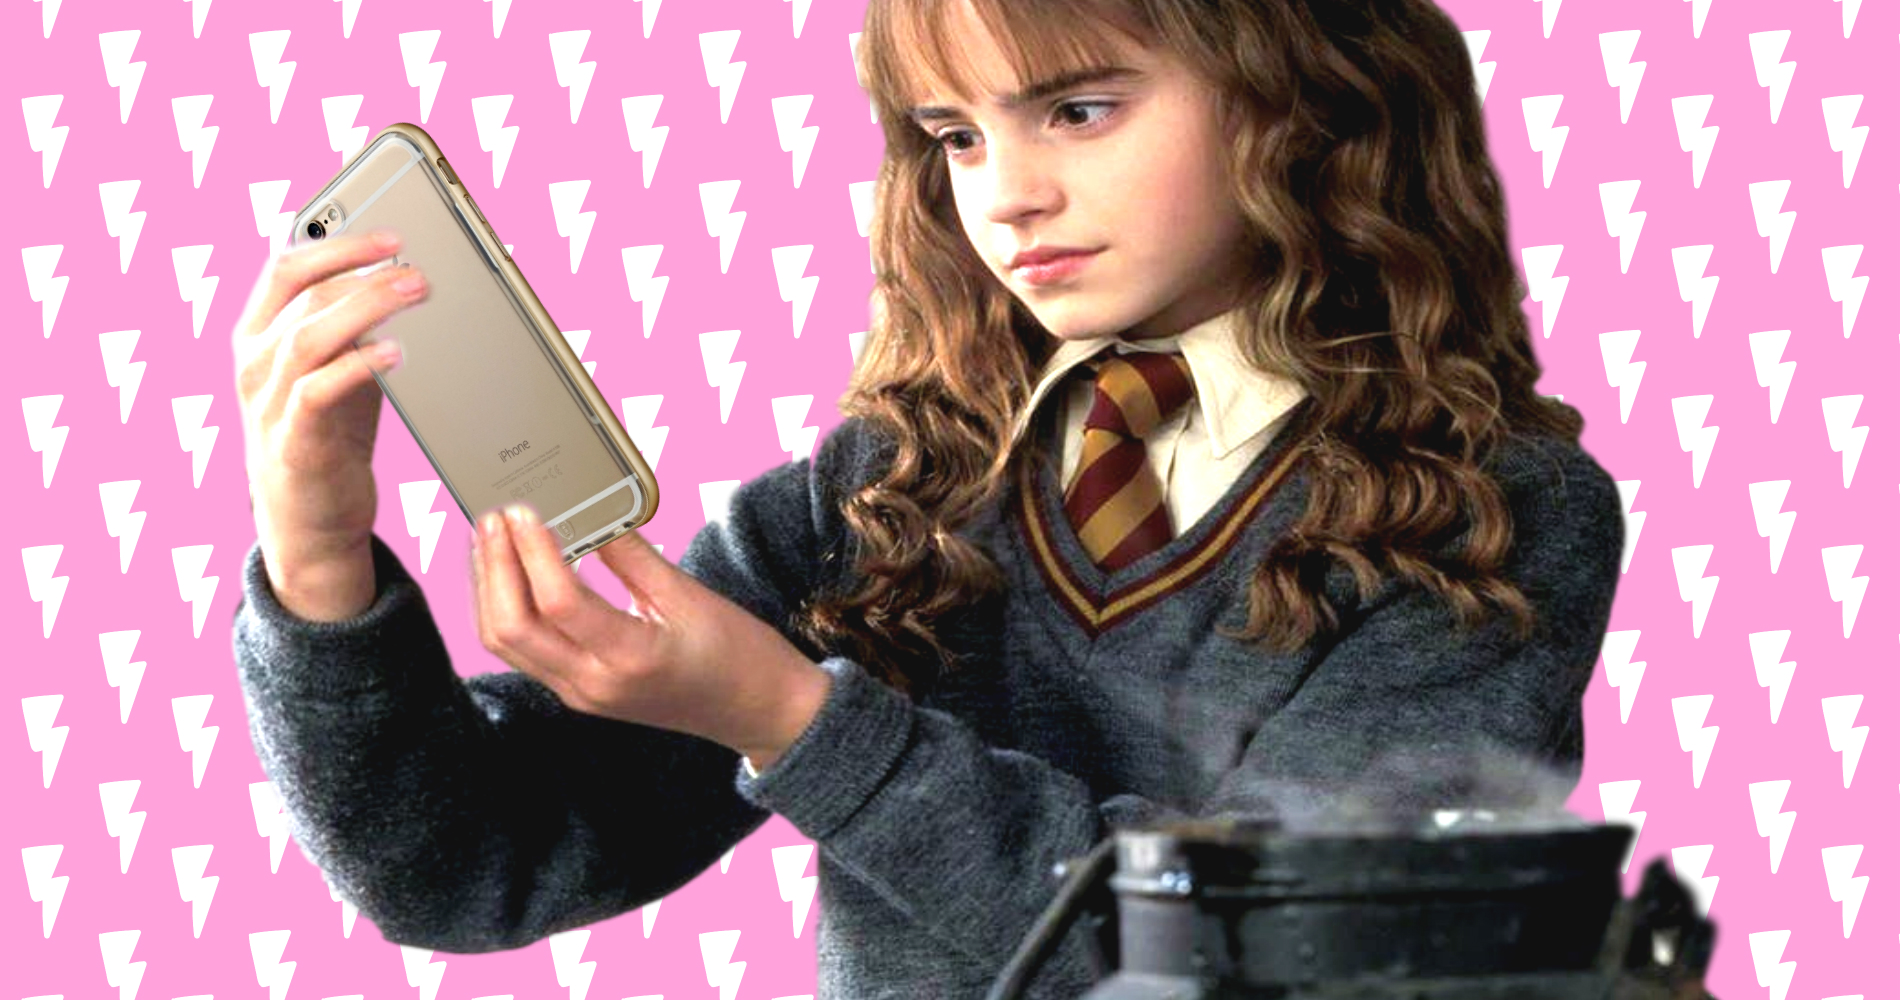 harry potter, hermione, emma watson, iphone, gaming, hs